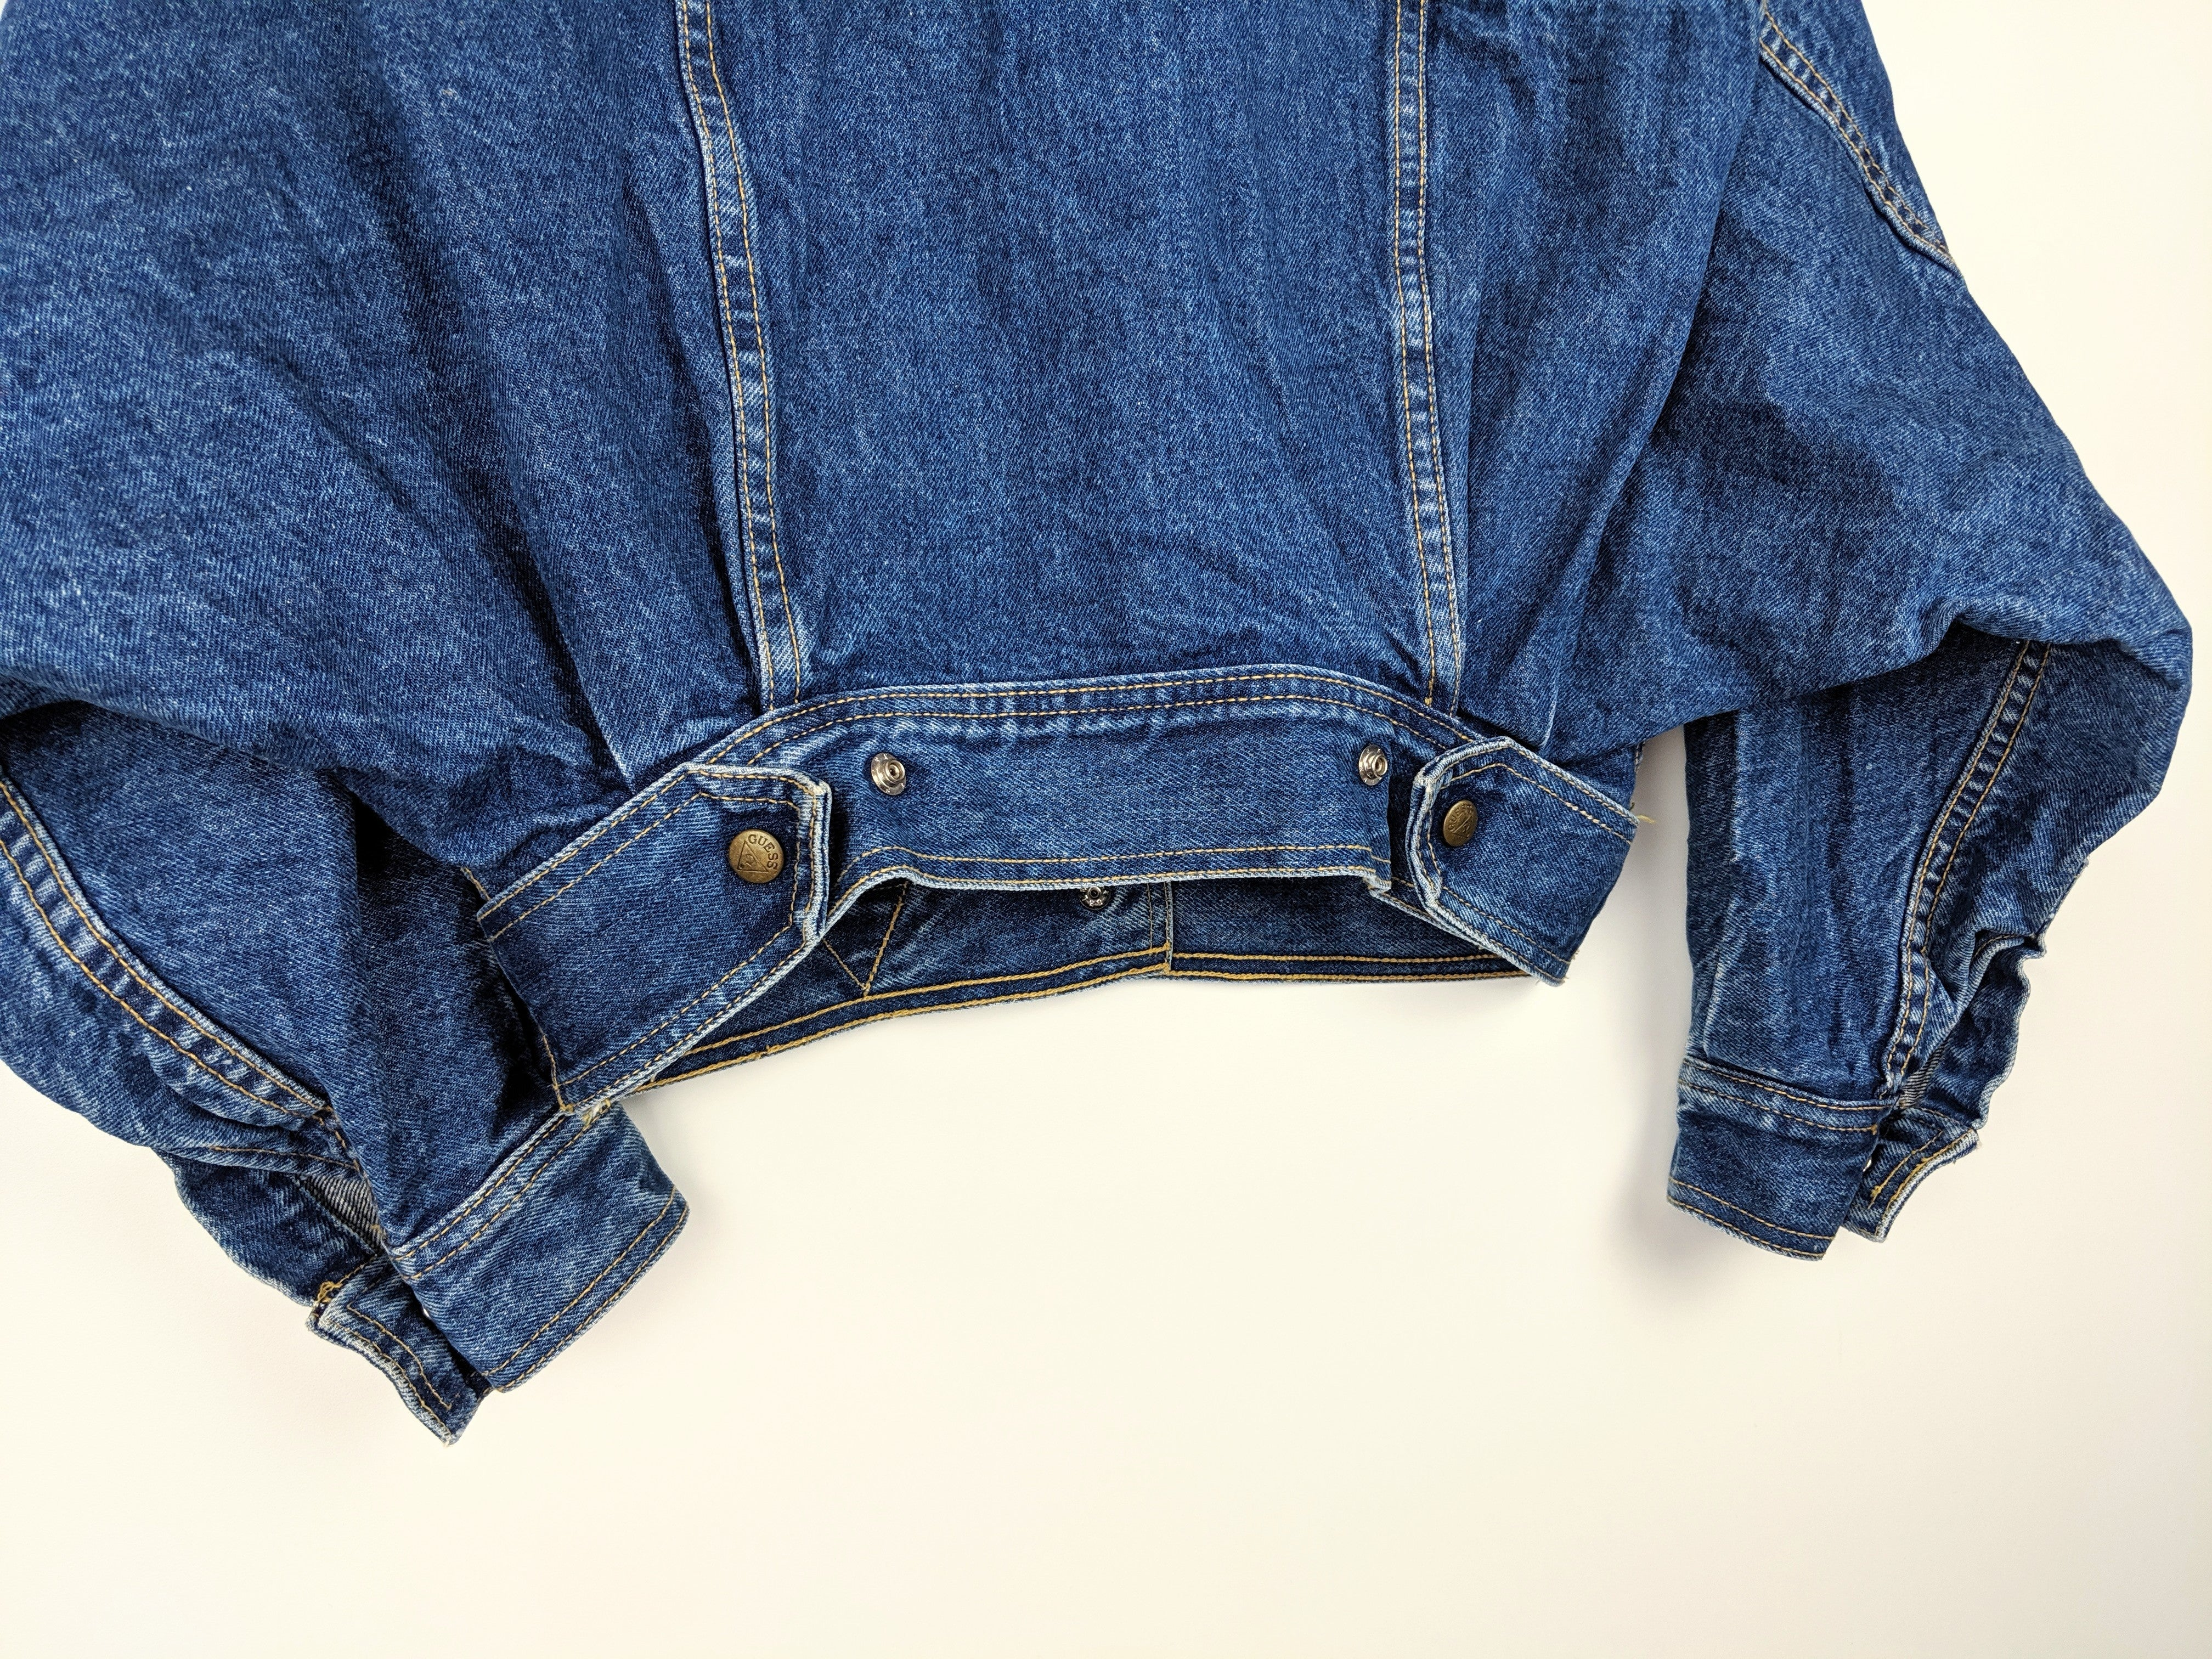 Vintage Guess Denim Jacket (S)